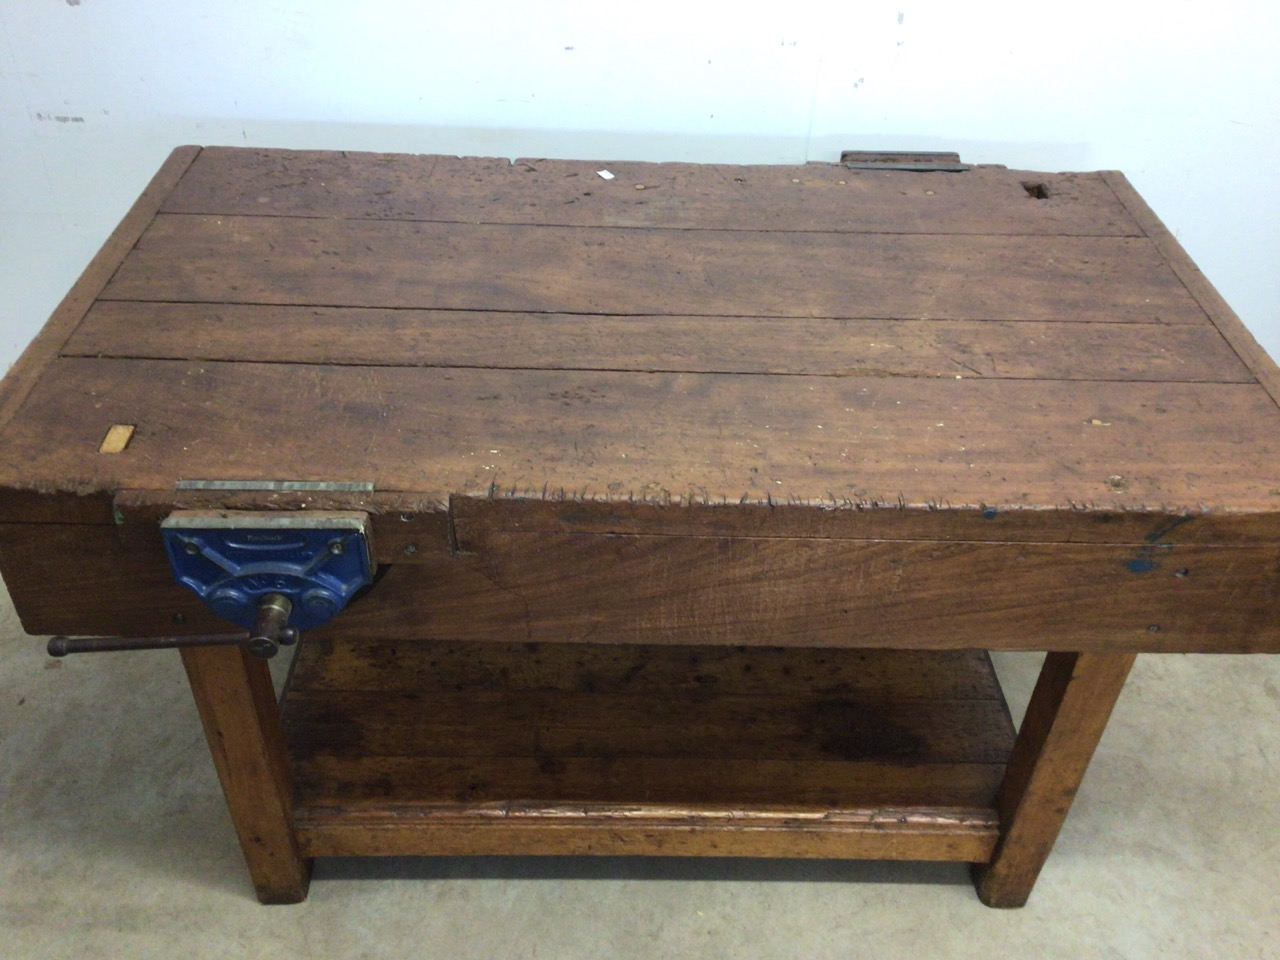 An antique Hardwood workbench with two vices and a lower shelf. W:140cm x D:85cm x H:78cm